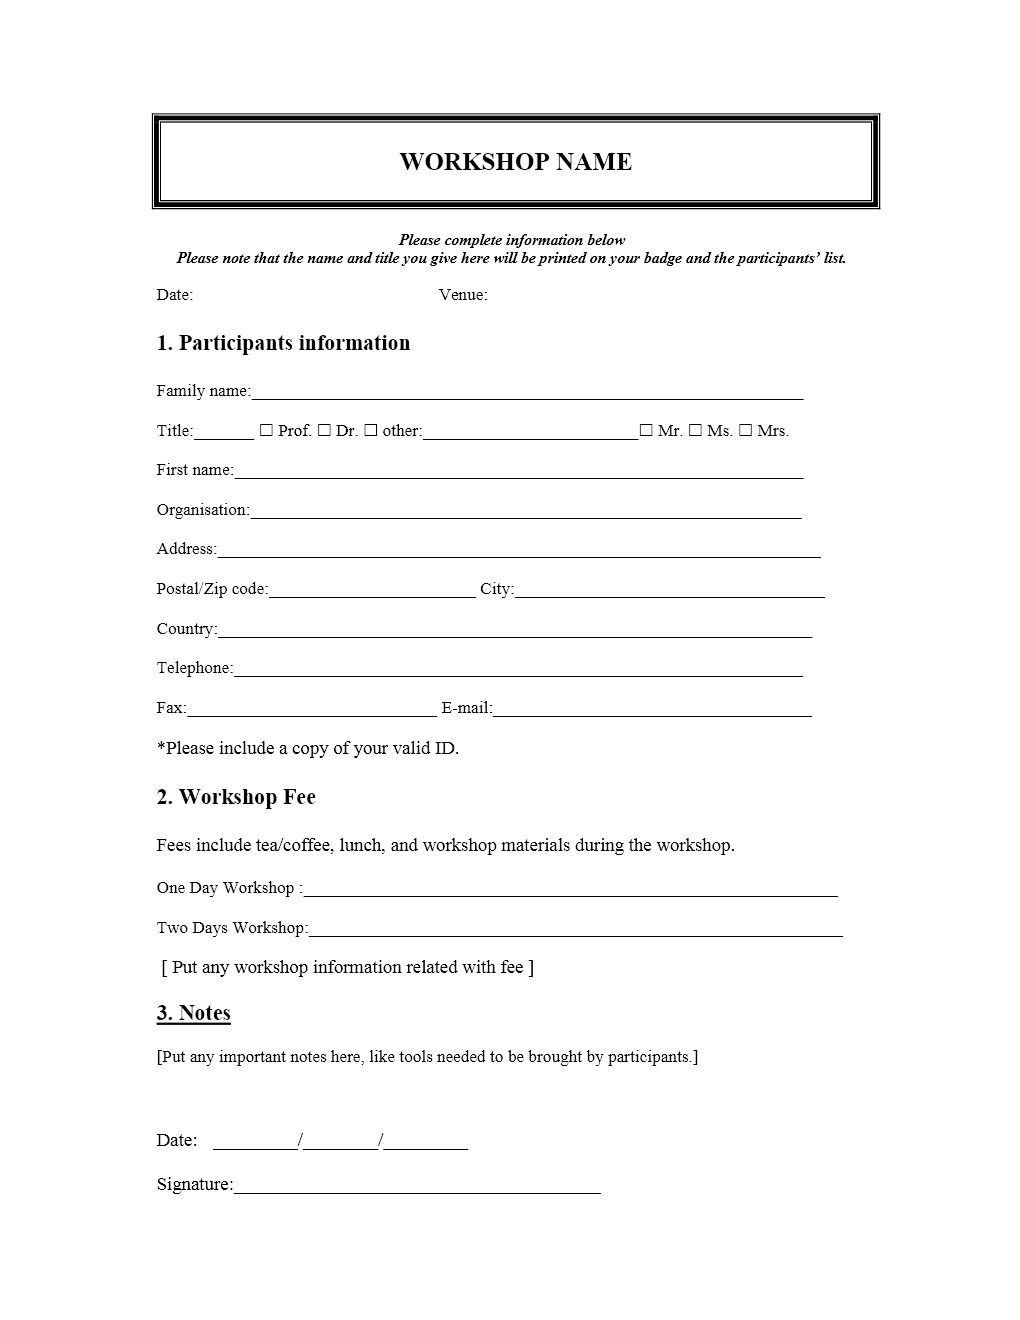 Workshop Registration Form – Form Template Word